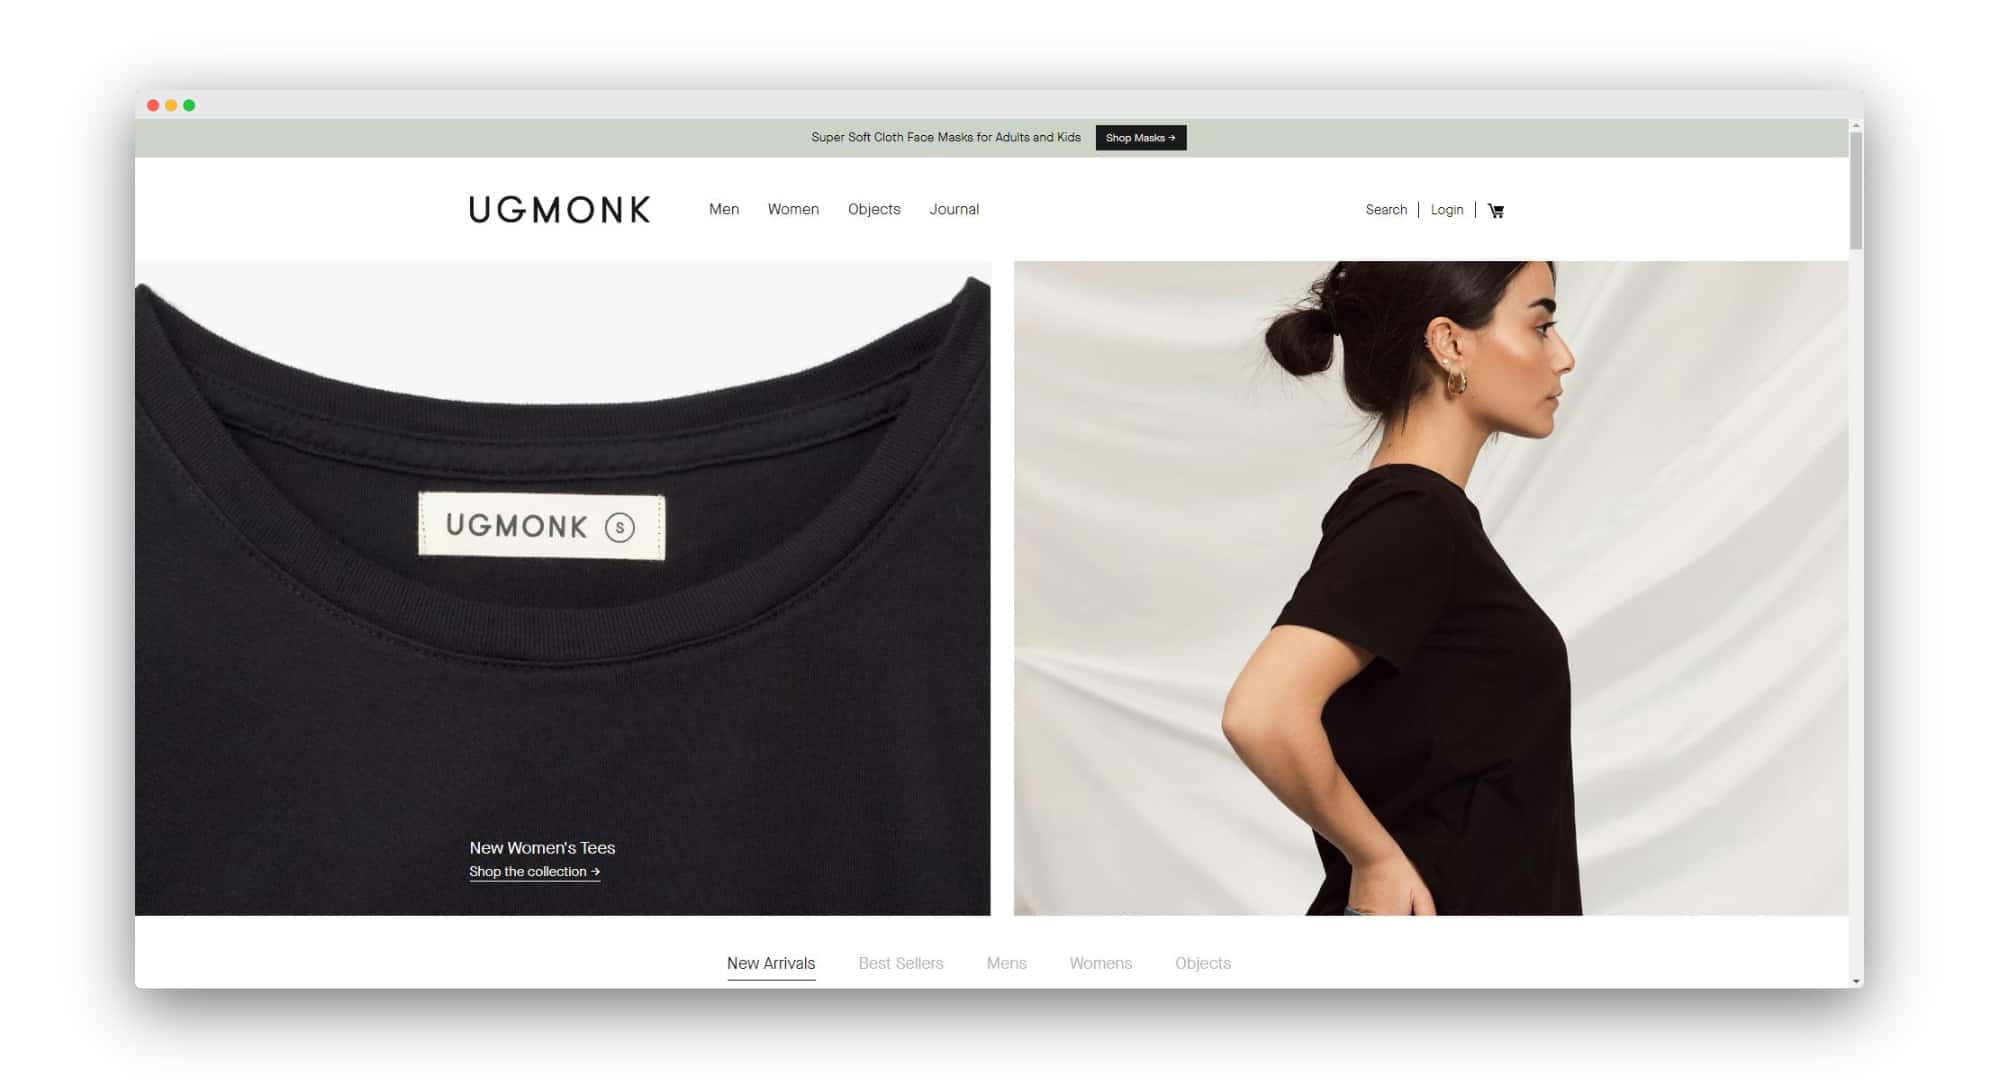 Ugmonk Direct-to-Consumer Brands